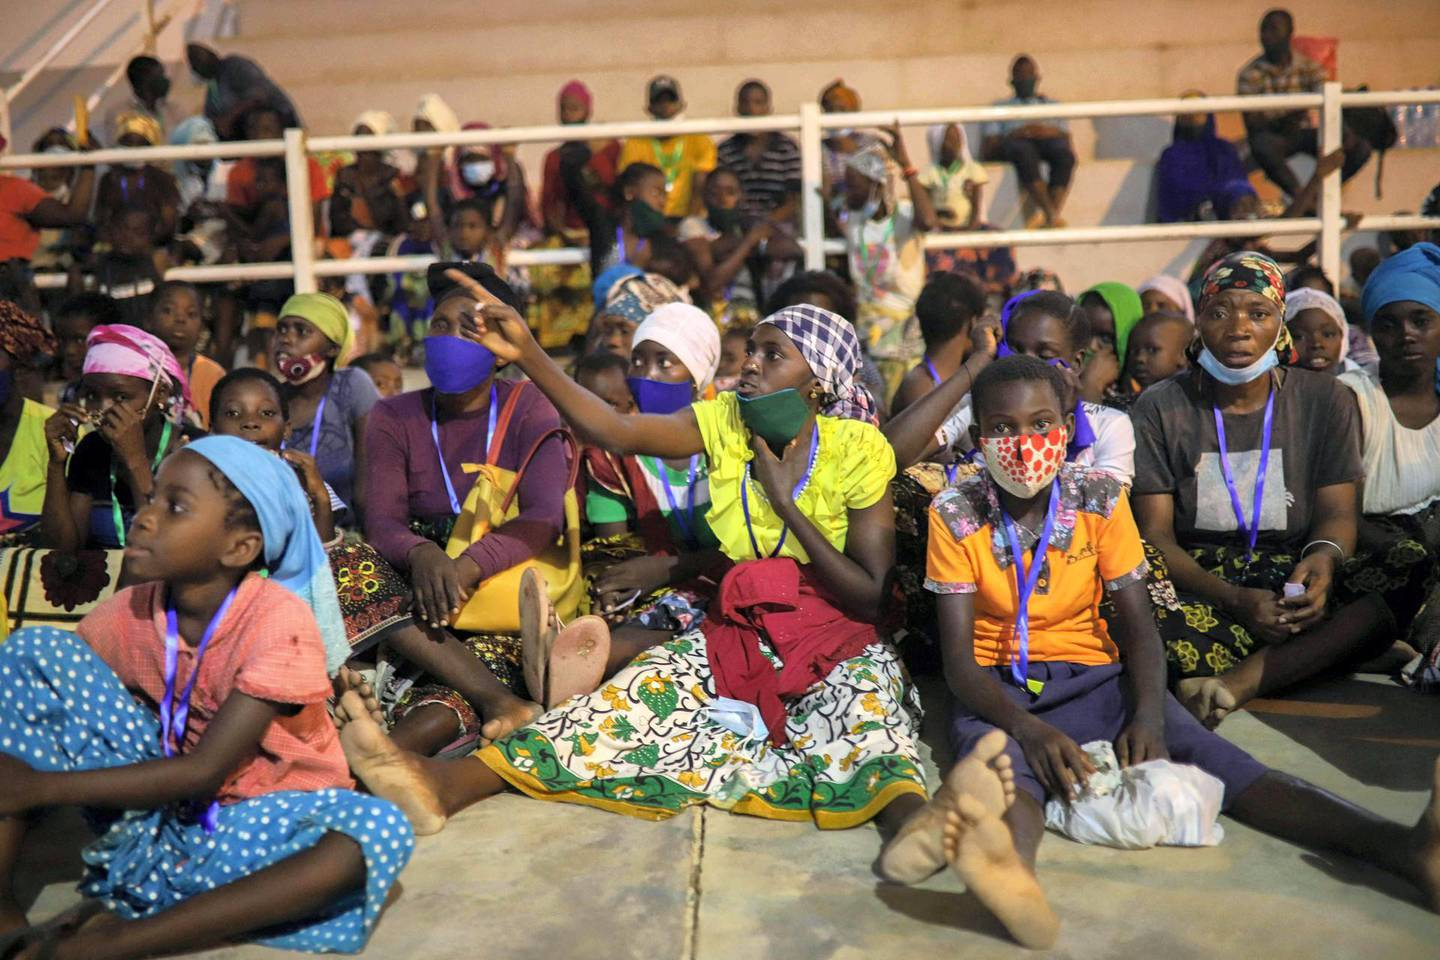 TOPSHOT - Internally displaced people (IDP) from Palma gather in the Pemba Sports center to receive humanitarian aid in Pemba on April 2, 2021. They people were evacuated from the coasts of Palma after armed insurgents attacked the city on March 24, 2021. / AFP / Alfredo Zuniga